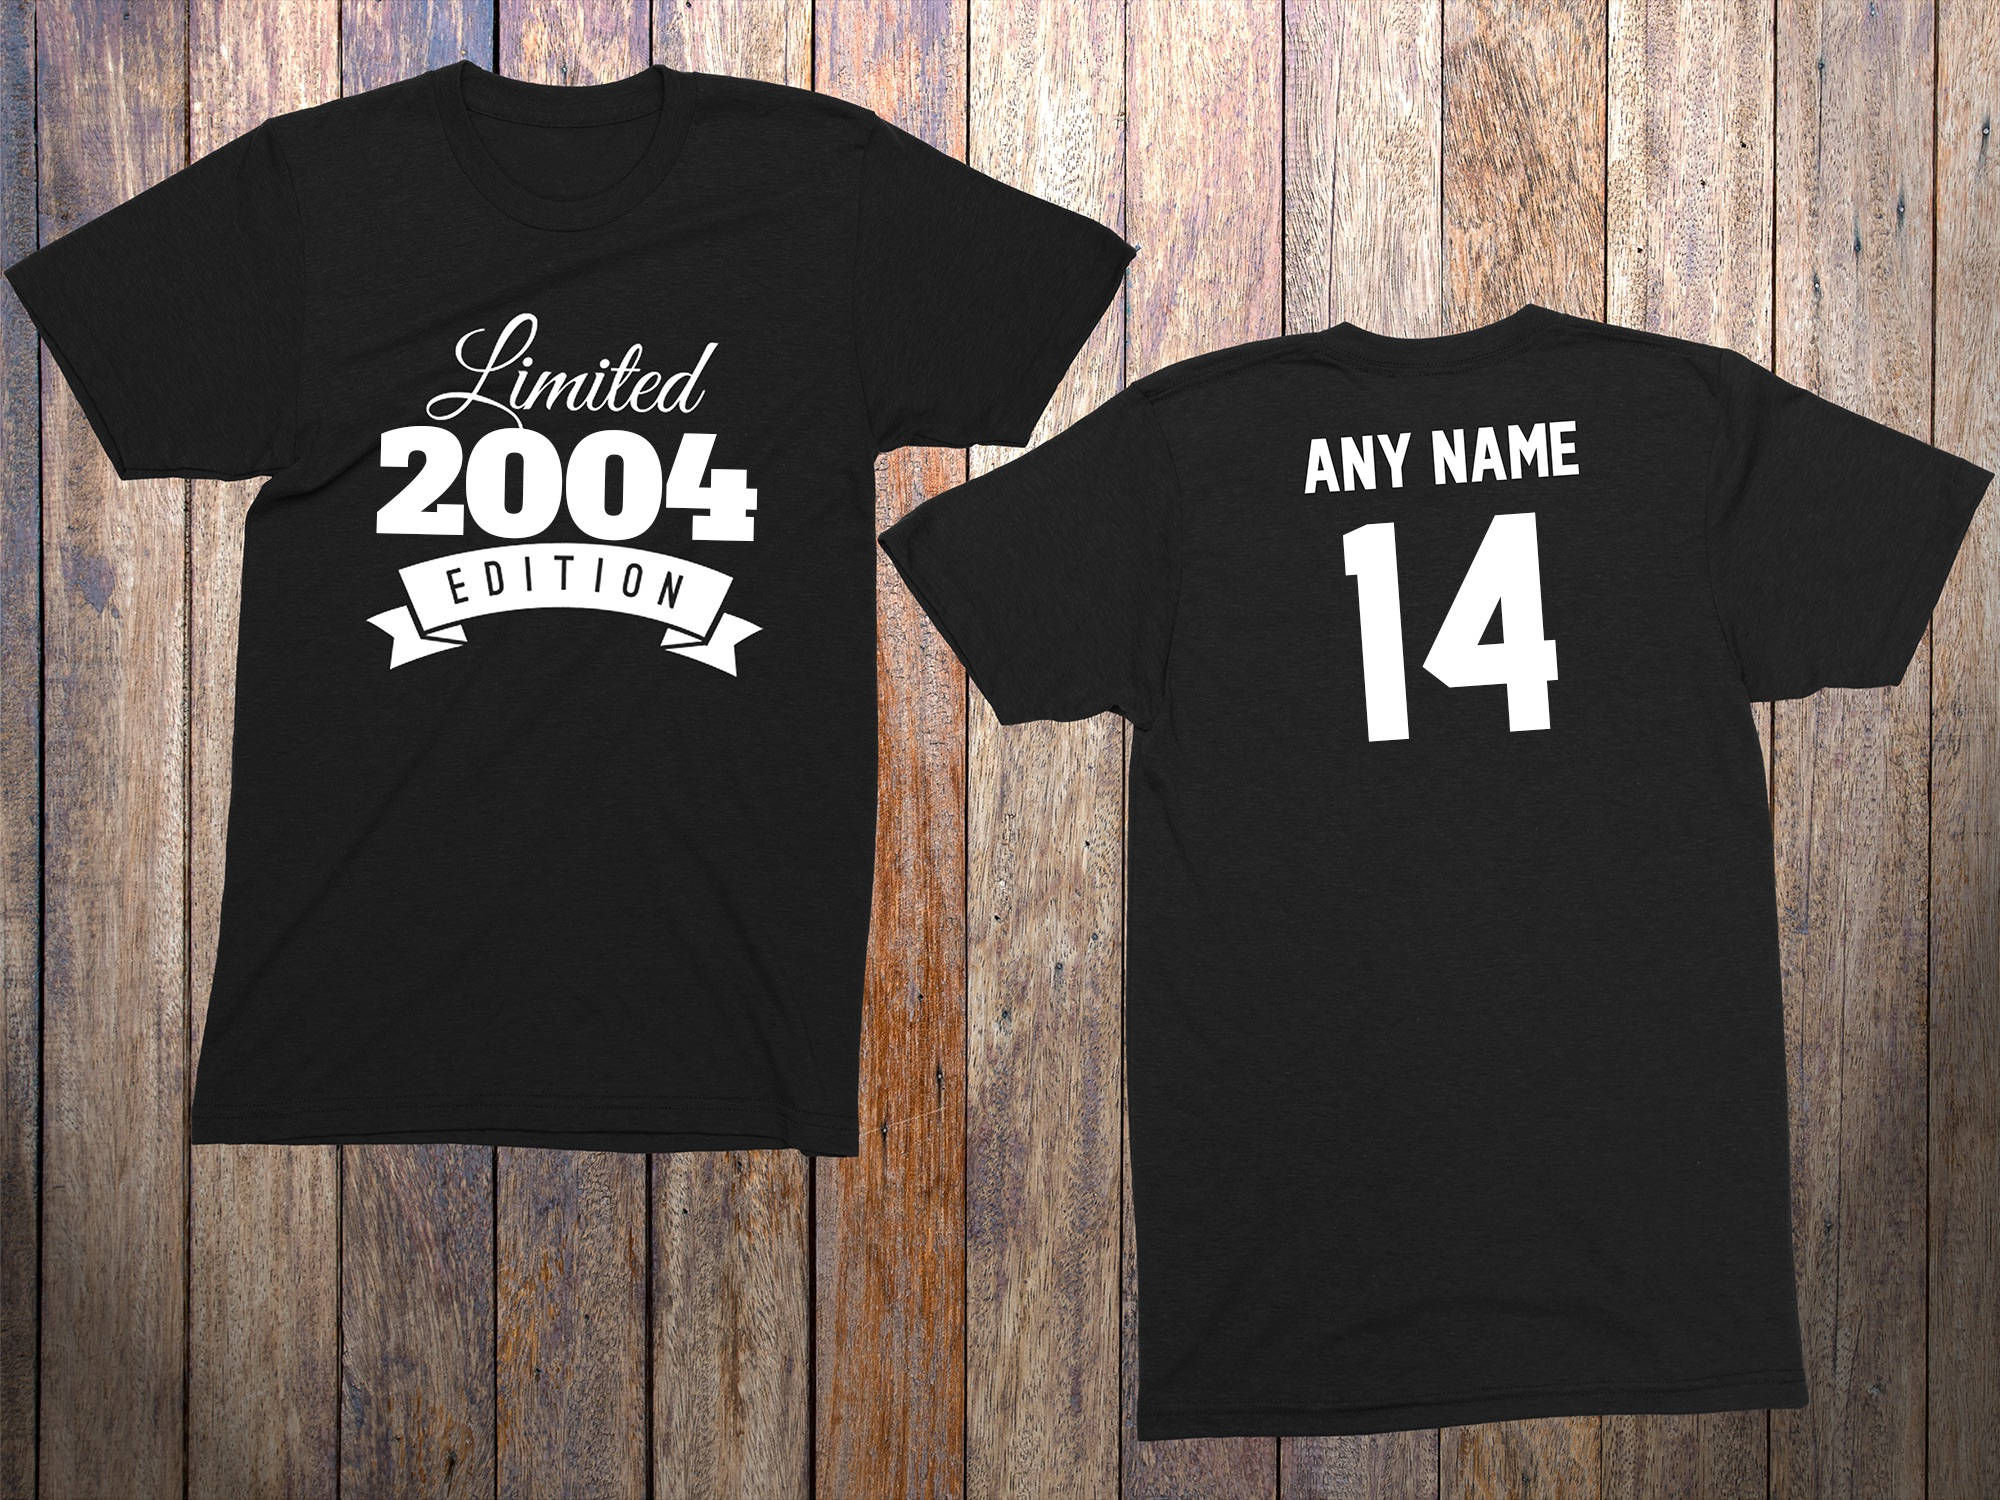 14 Year Old Birthday Shirt Or Hoodie 2004 Kids Limited Edition 14th Youth Celebration